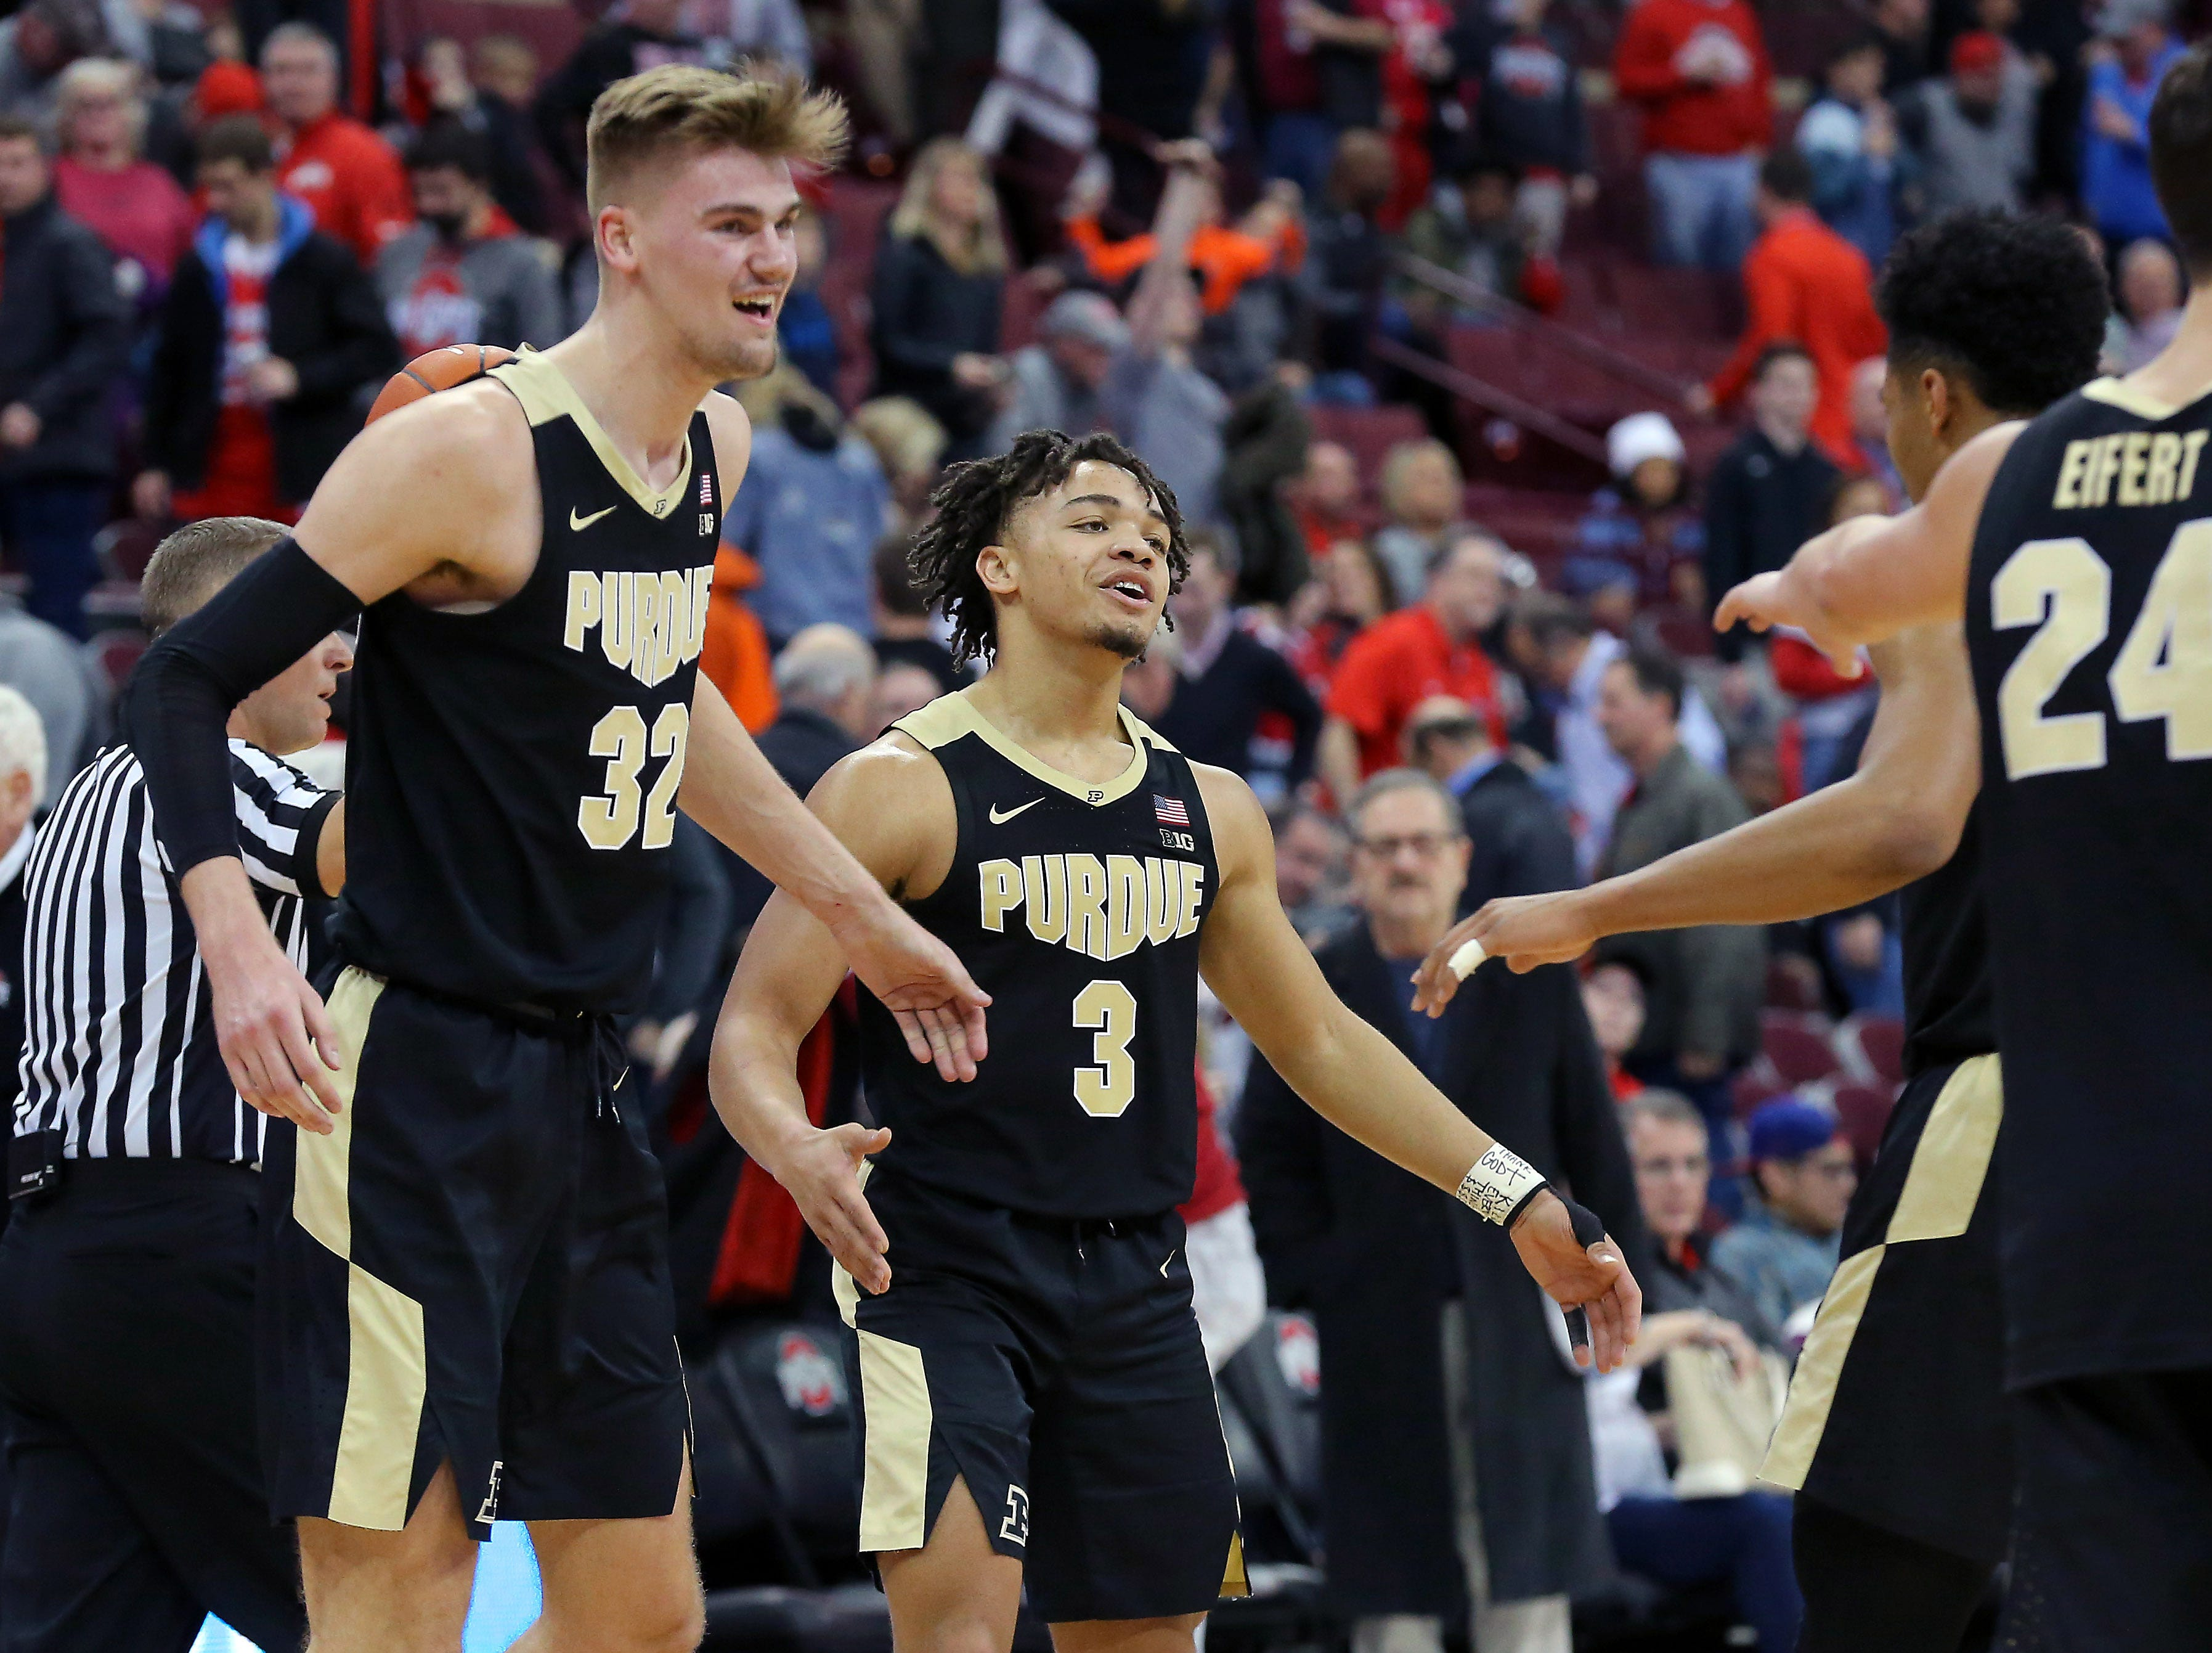 Jan 23, 2019; Columbus, OH, USA; Purdue Boilermakers guard Carsen Edwards (3) and center Matt Haarms (32) celebrate as time winds down against the Ohio State Buckeyes at Value City Arena. Mandatory Credit: Joe Maiorana-USA TODAY Sports